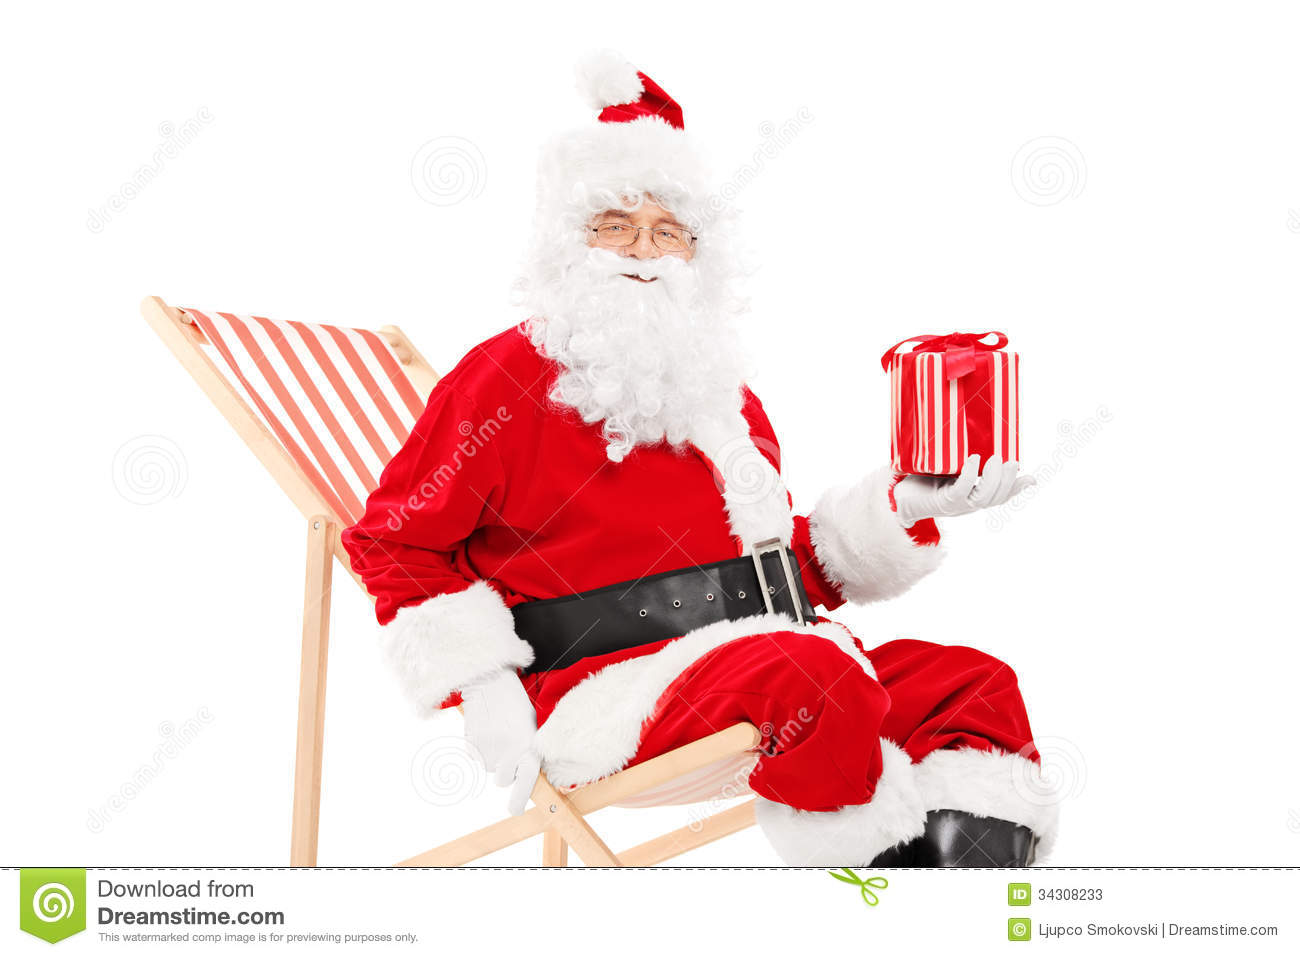 Smiling Santa Claus sitting on a beach chair and holding a gift